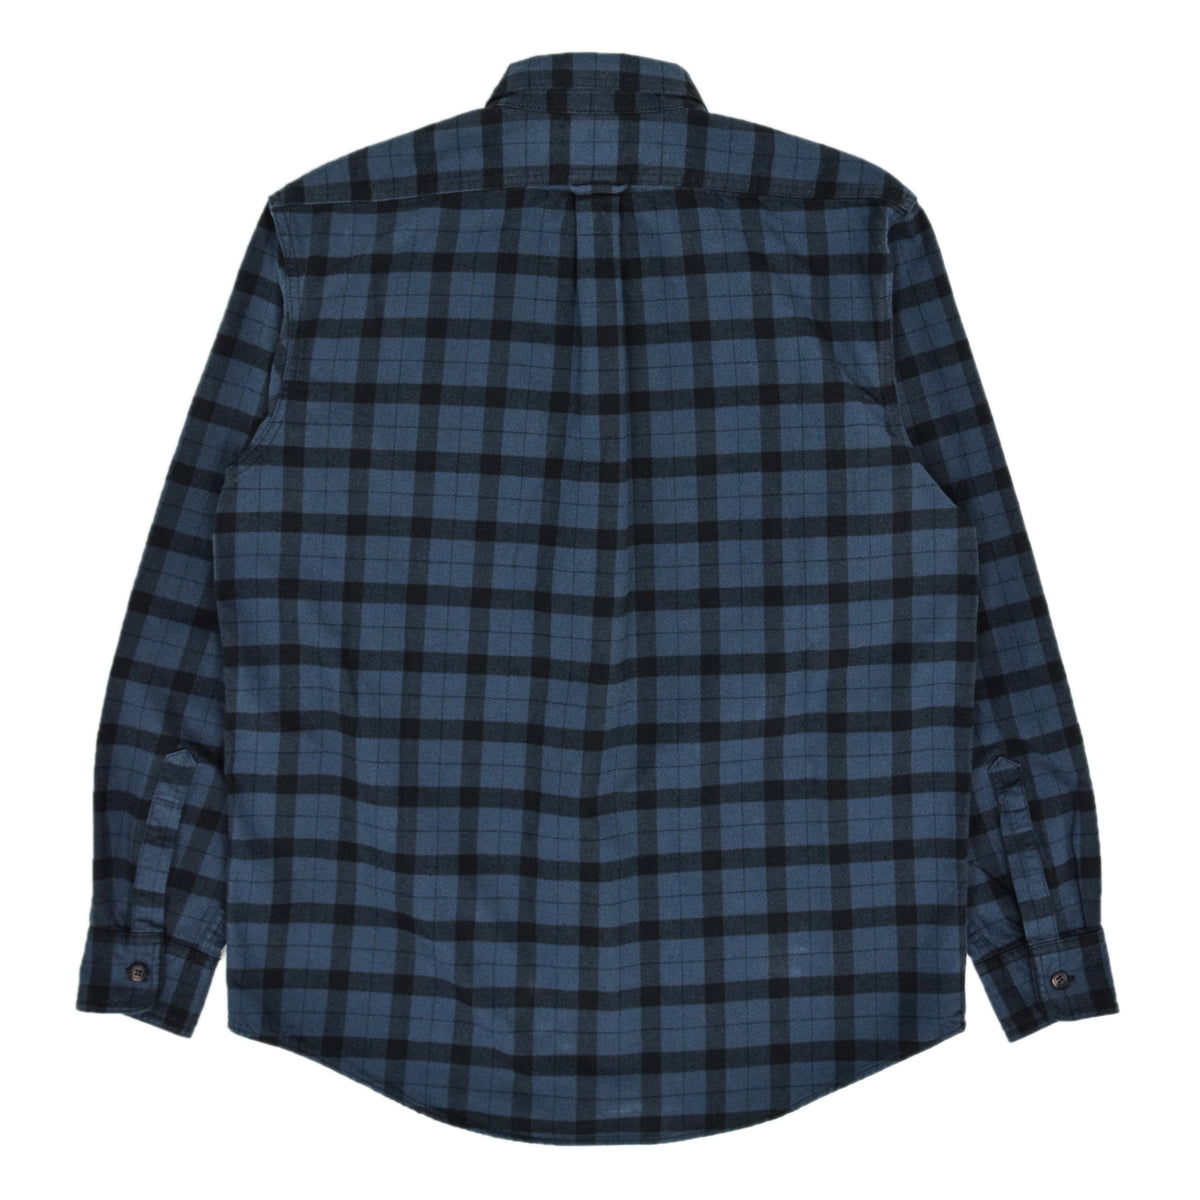 Filson Alaskan Guide Cotton Flannel Shirt Blue/Black Back